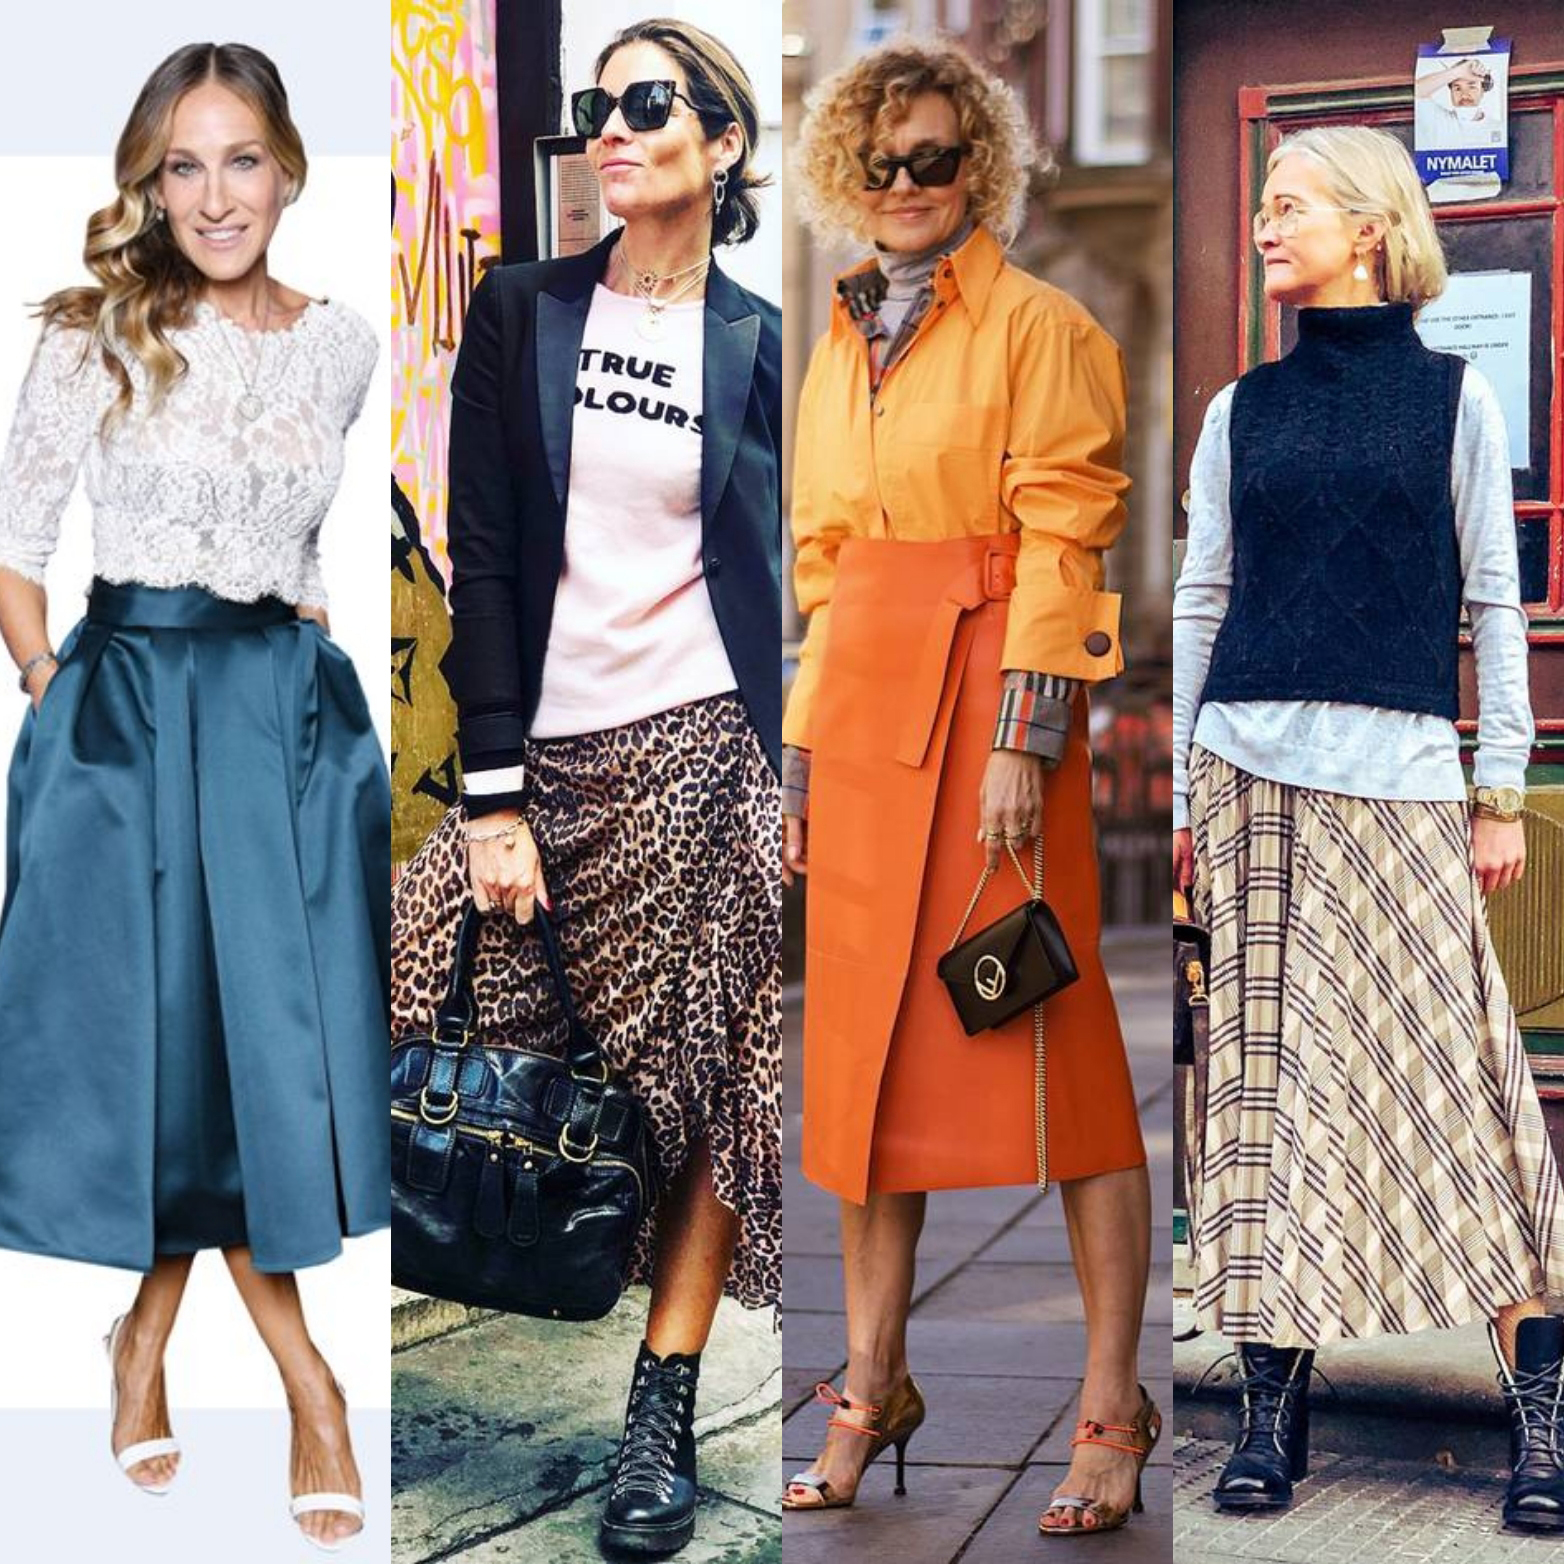 Not looking matronly in skirts:  Sarah Jessica Parker and fashion influencers over 40